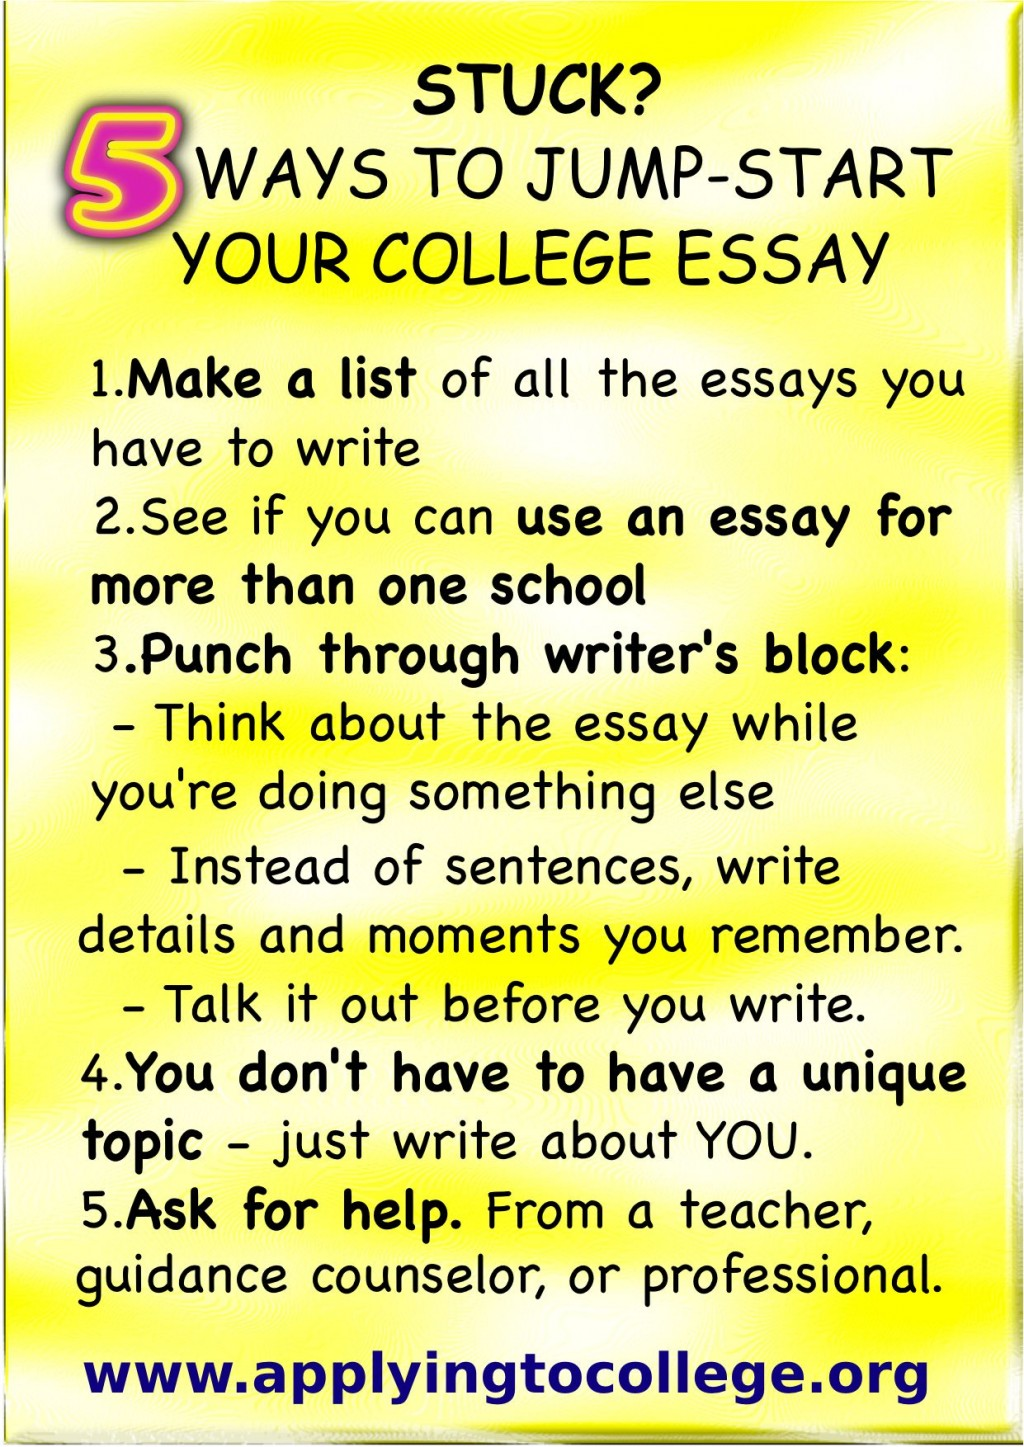 018 Stress Essay Awesome Outline Impact On Health Cause And Effect College Students Large